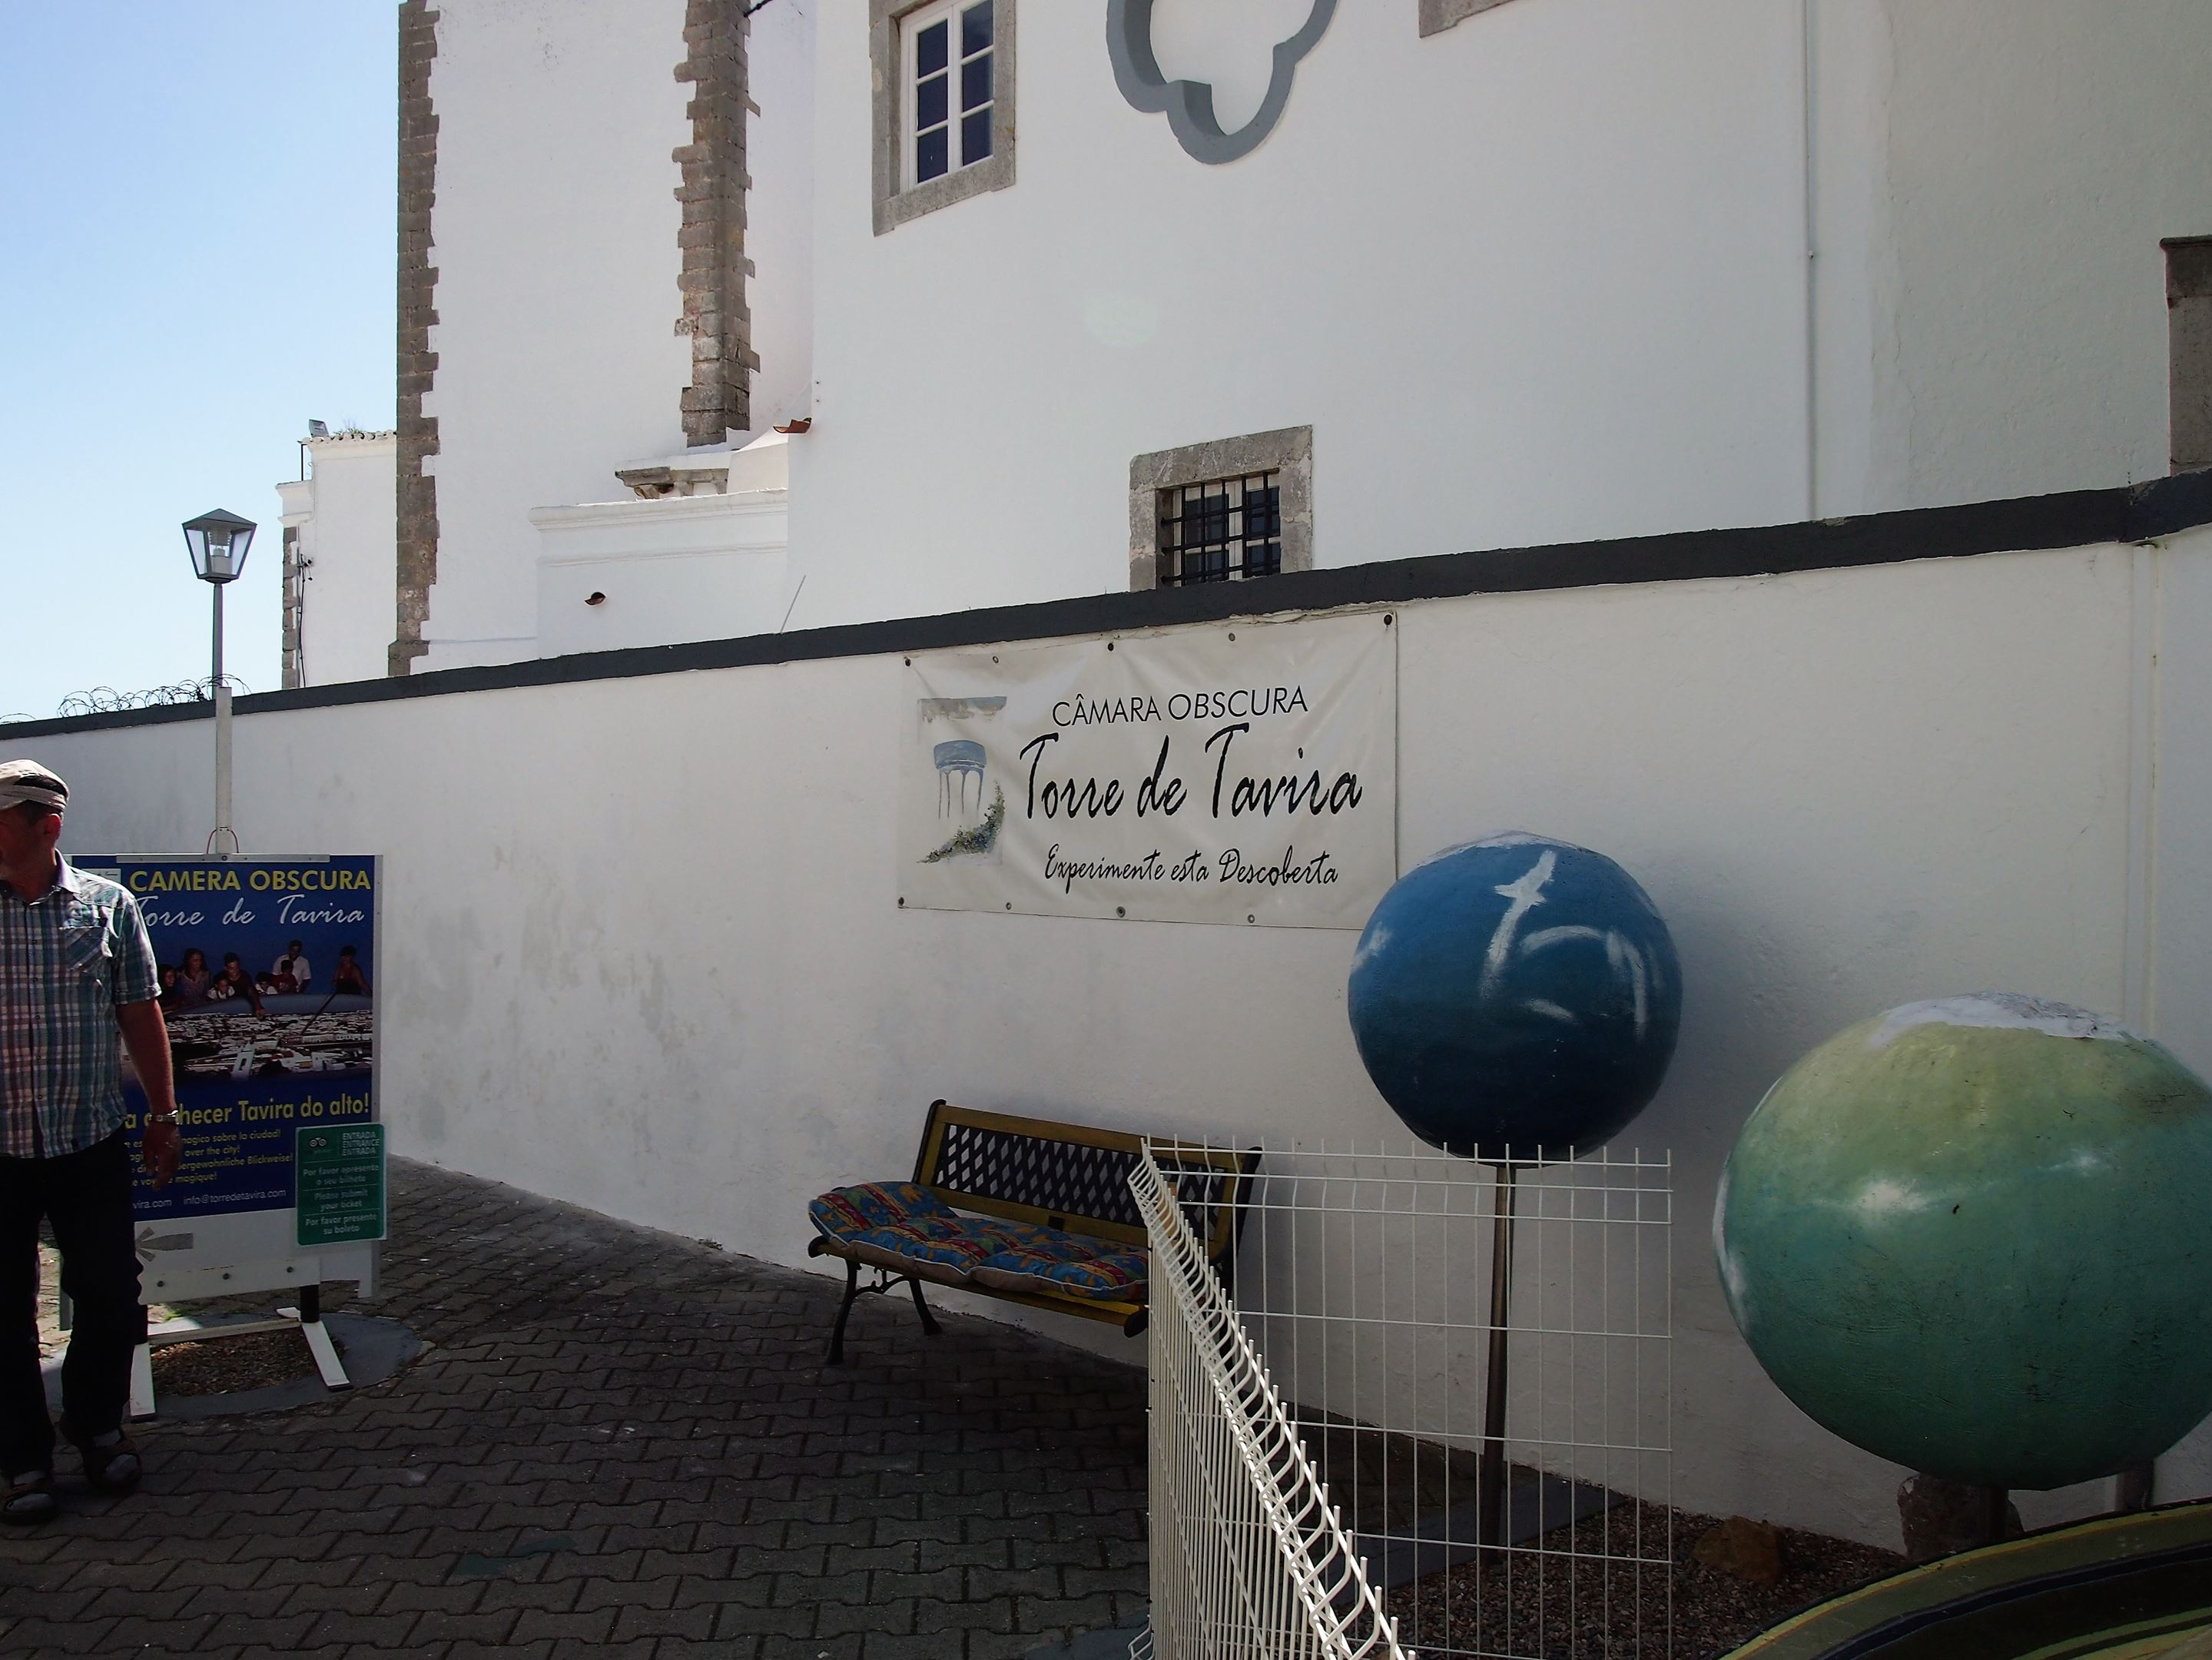 At the entrance to the Torre de Tavira (Tavira Tower) which house the camera obscura at the top.